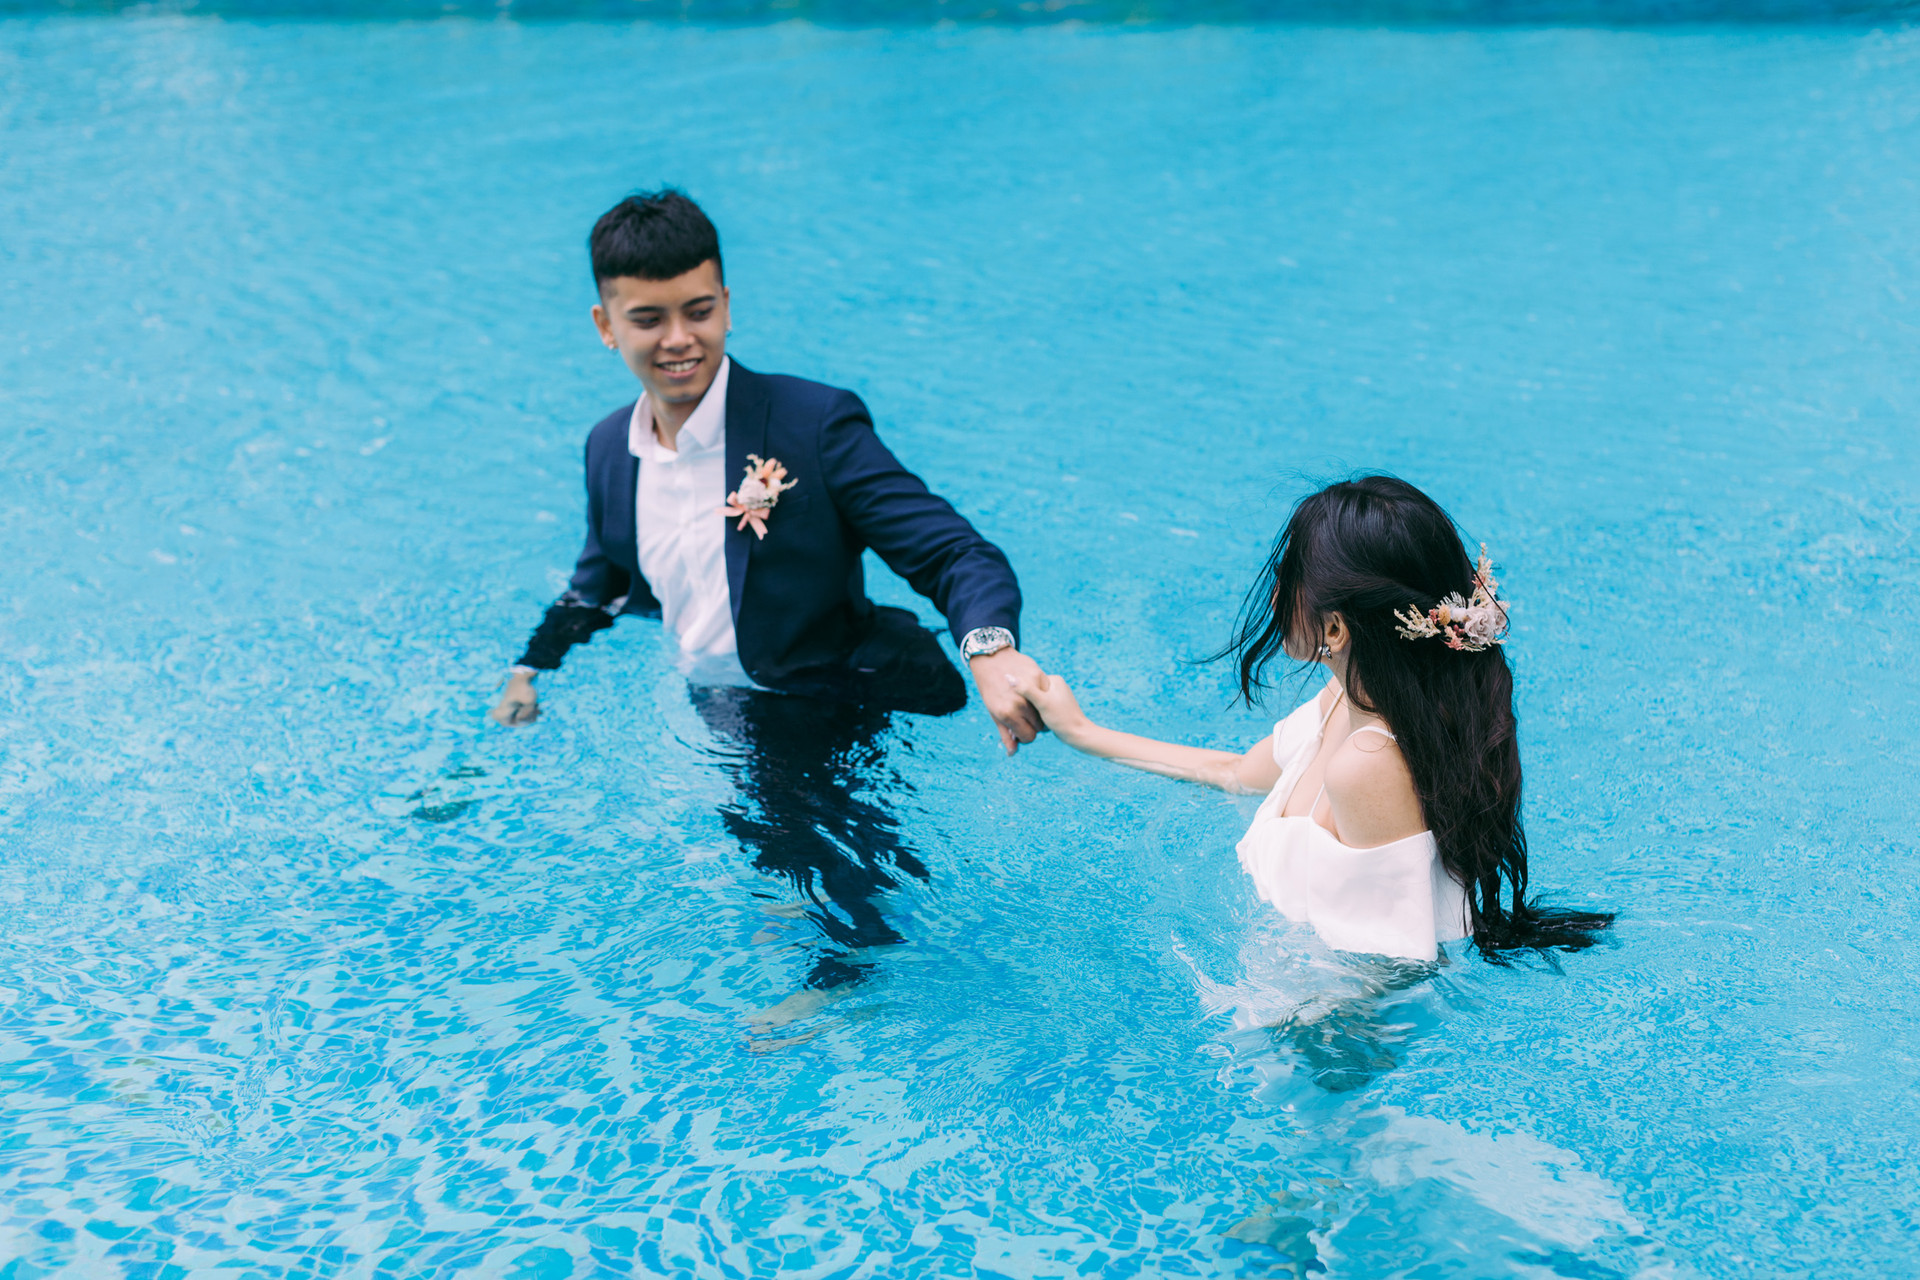 boonheng and jessica-128.jpg